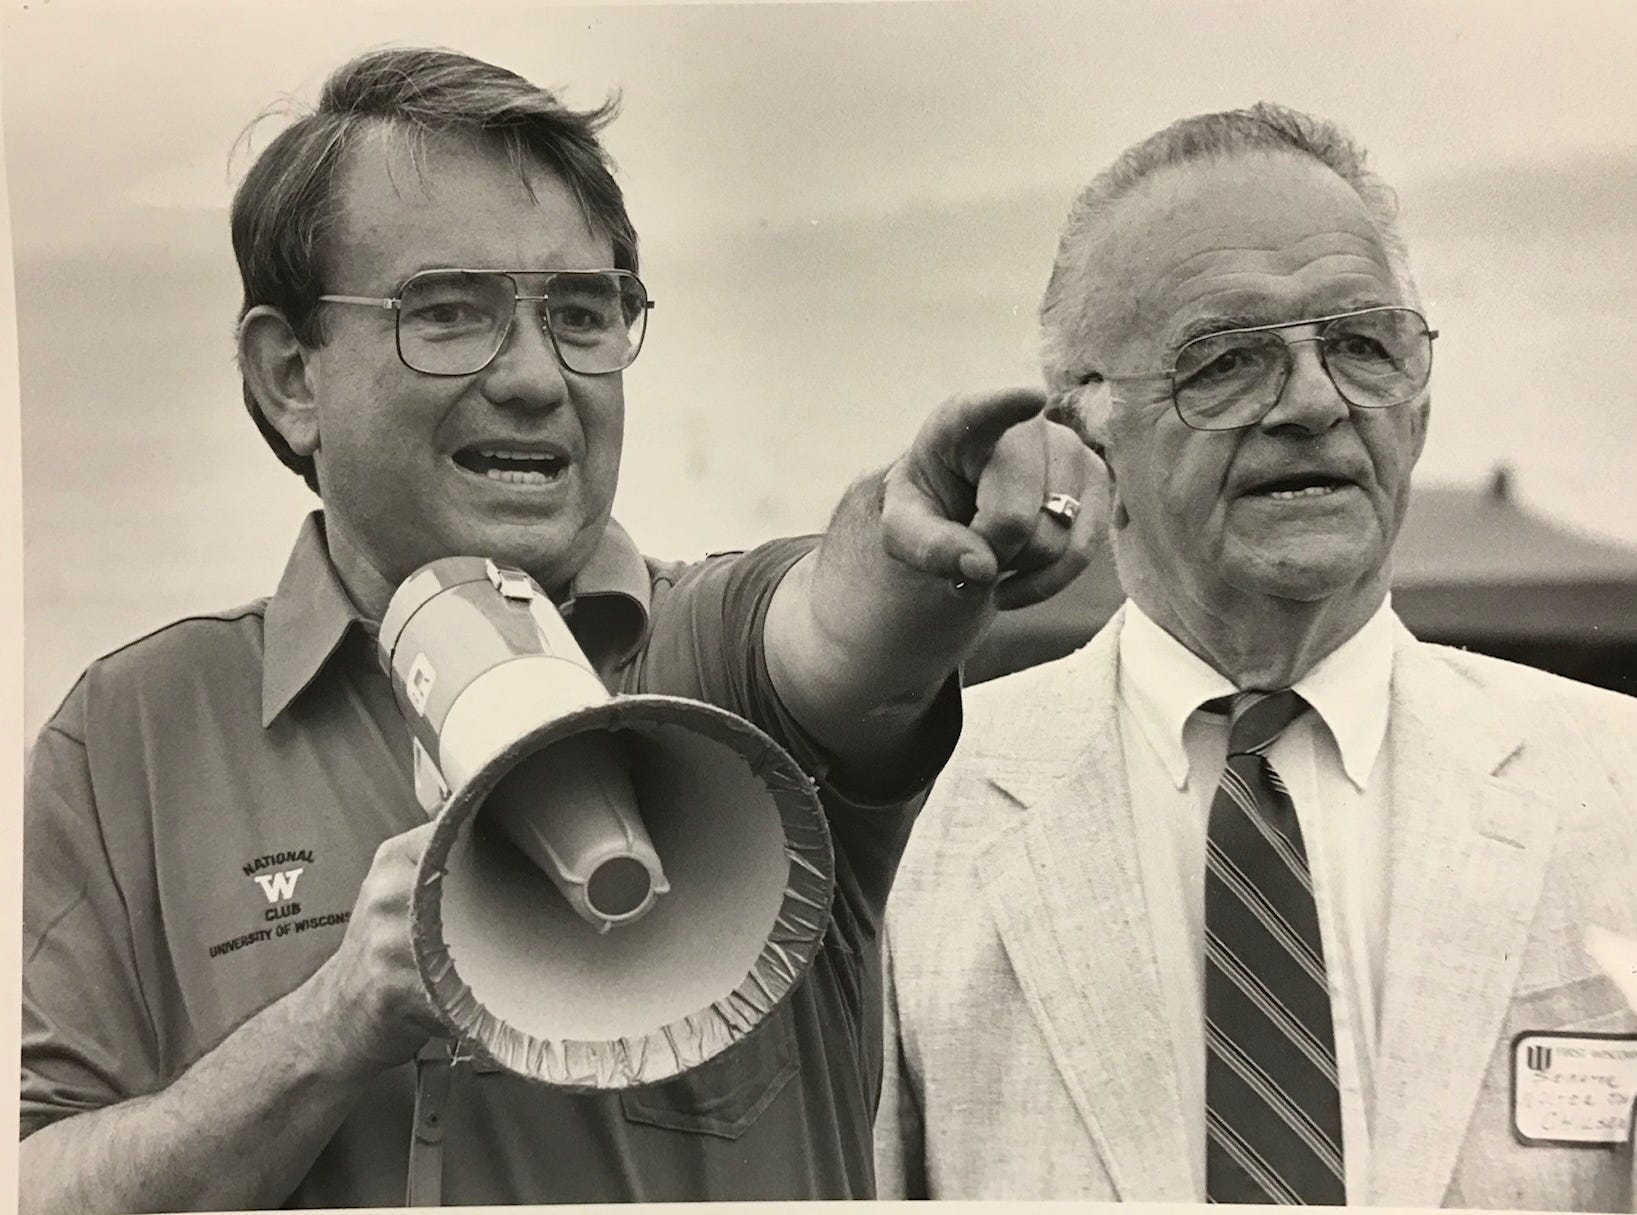 State Sen. Walter John Chilsen appears with Gov. Tommy Thompson in this undated photo from Wausau Daily Herald archives.